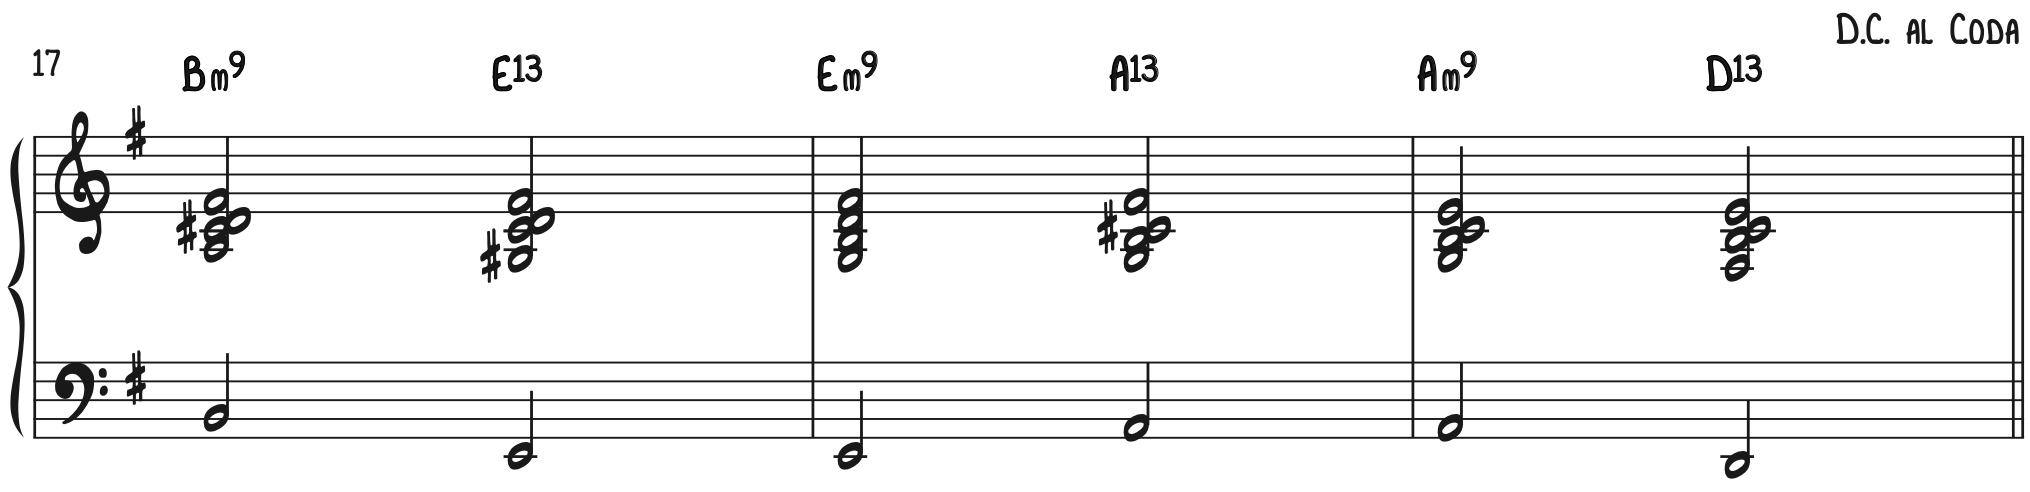 2-5 root movement and rootless voicings Have Yourself a Merry Little Christmas Piano Accompaniment B Section